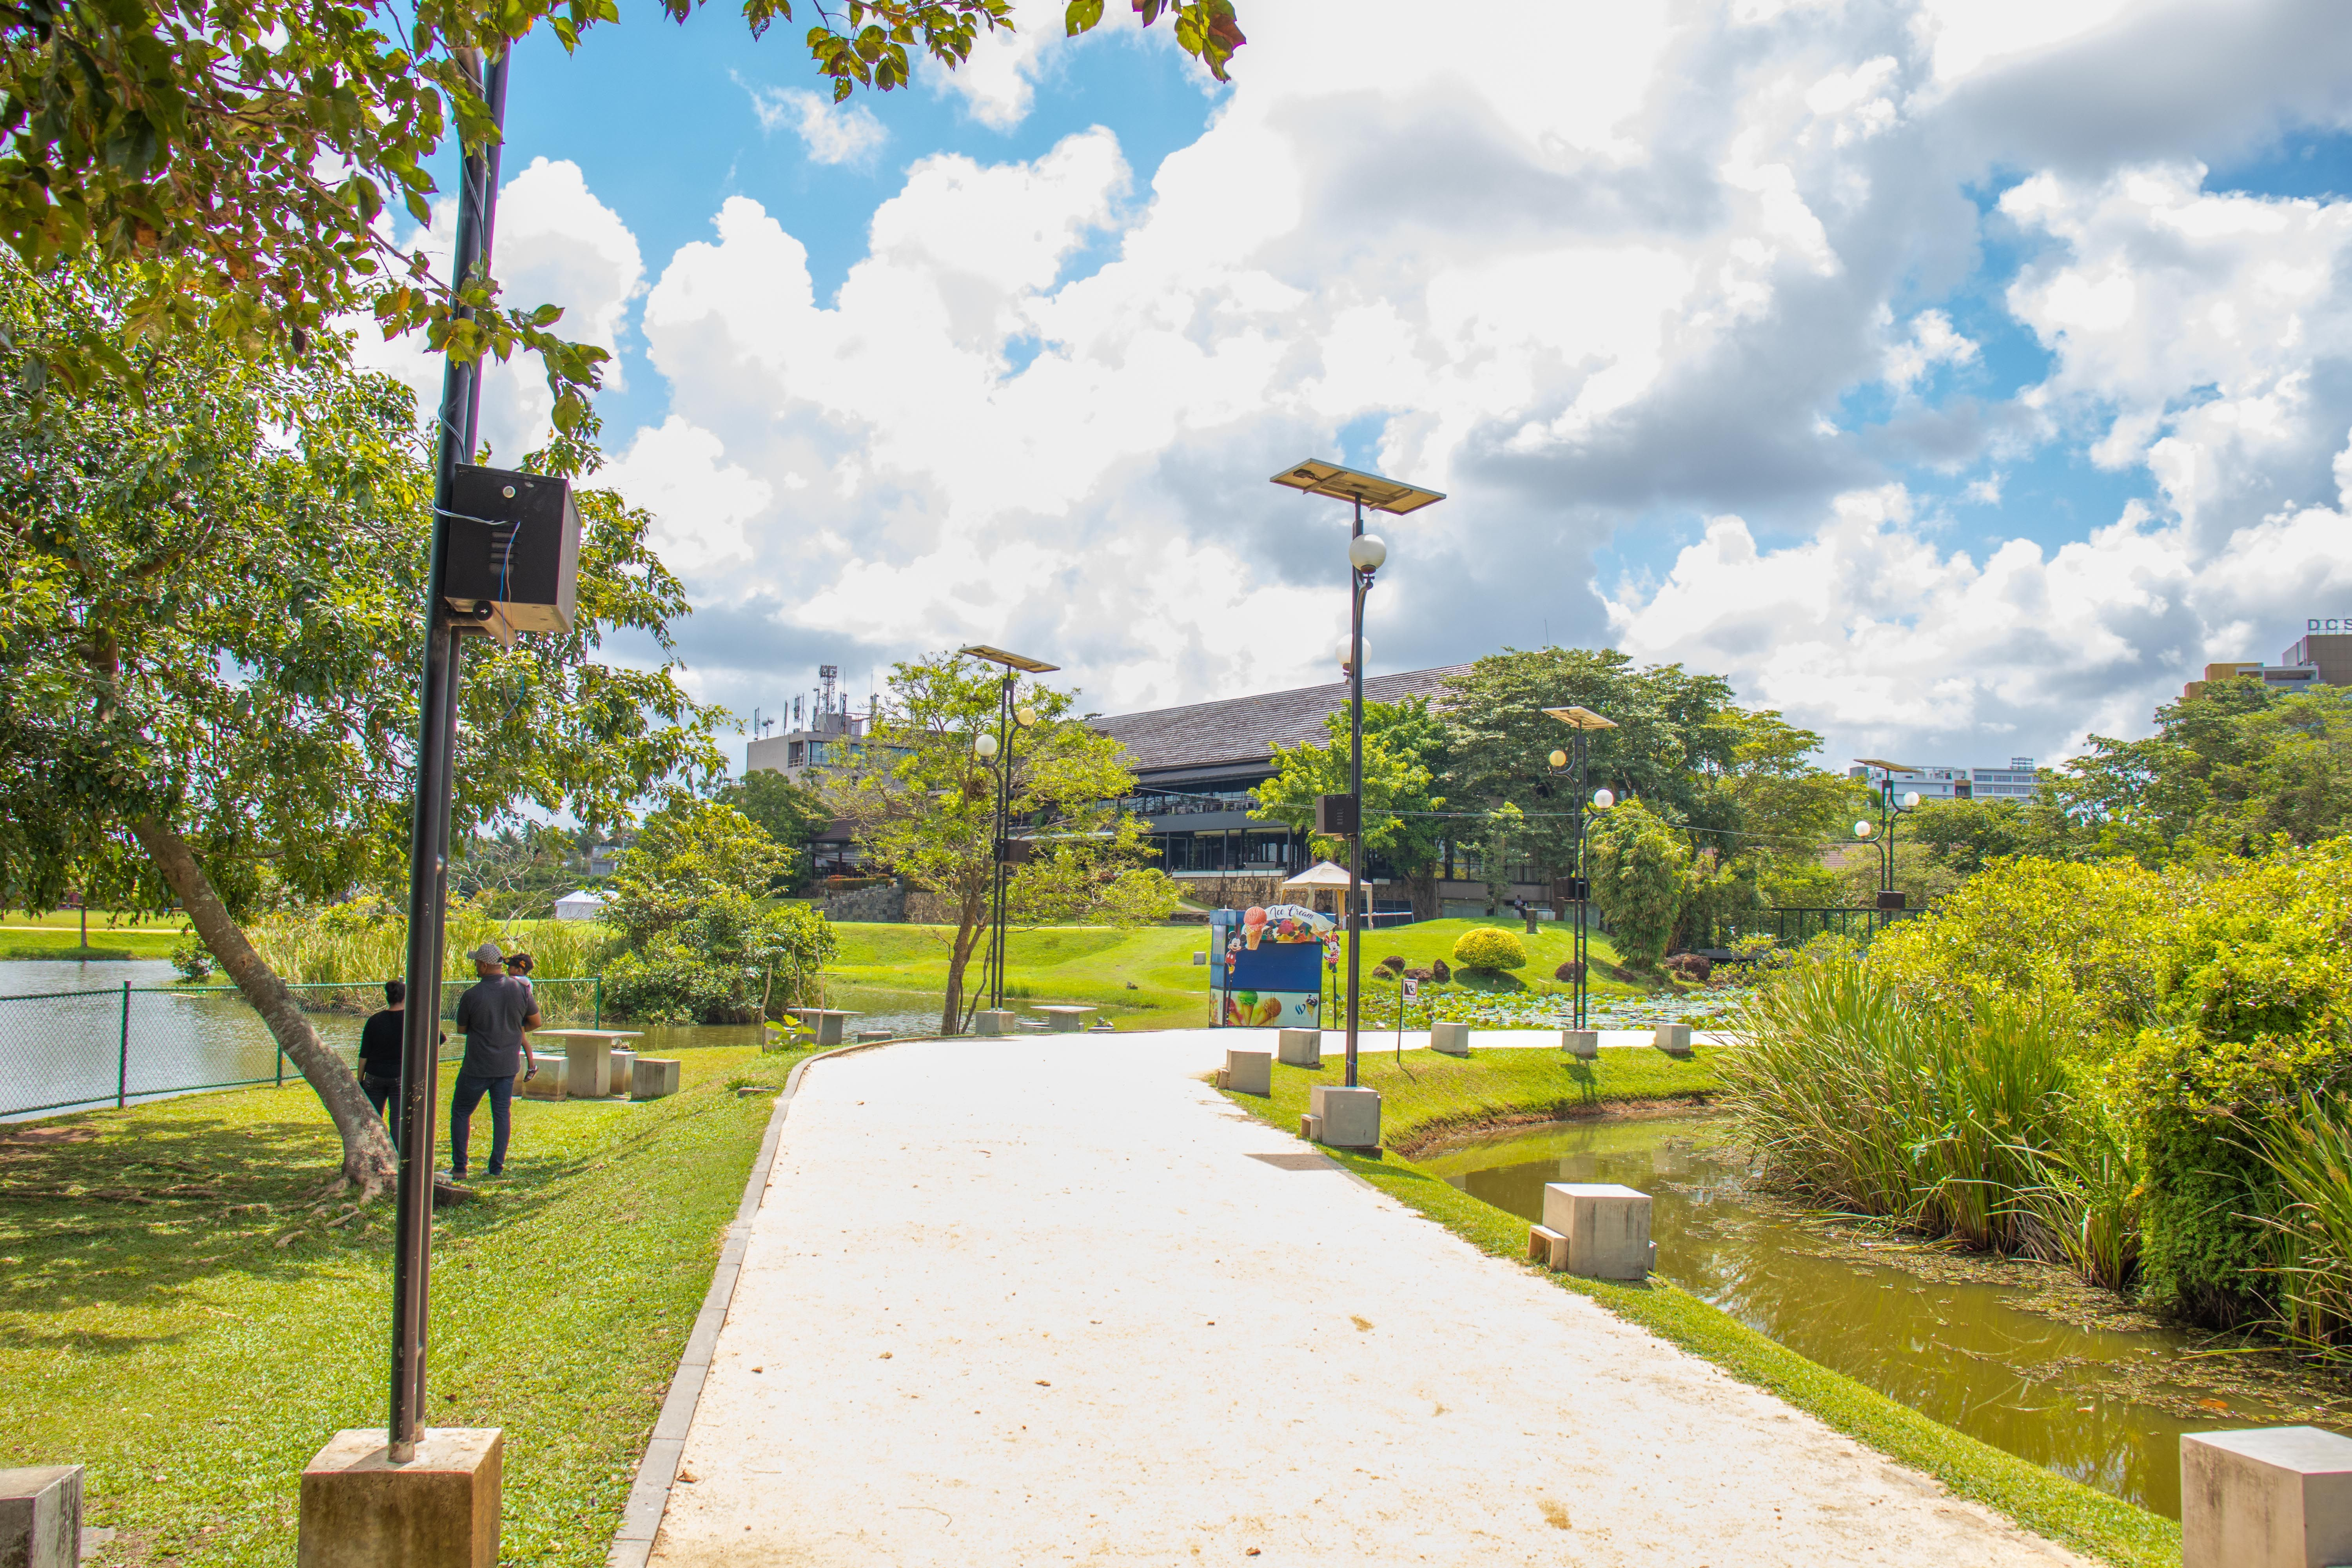 Diyatha Uyana Is A Located At Polduwa Junction Battaramulla Near The Waters Edge Hotel The Park Has Been Cons Western Province Southern Province Northwestern